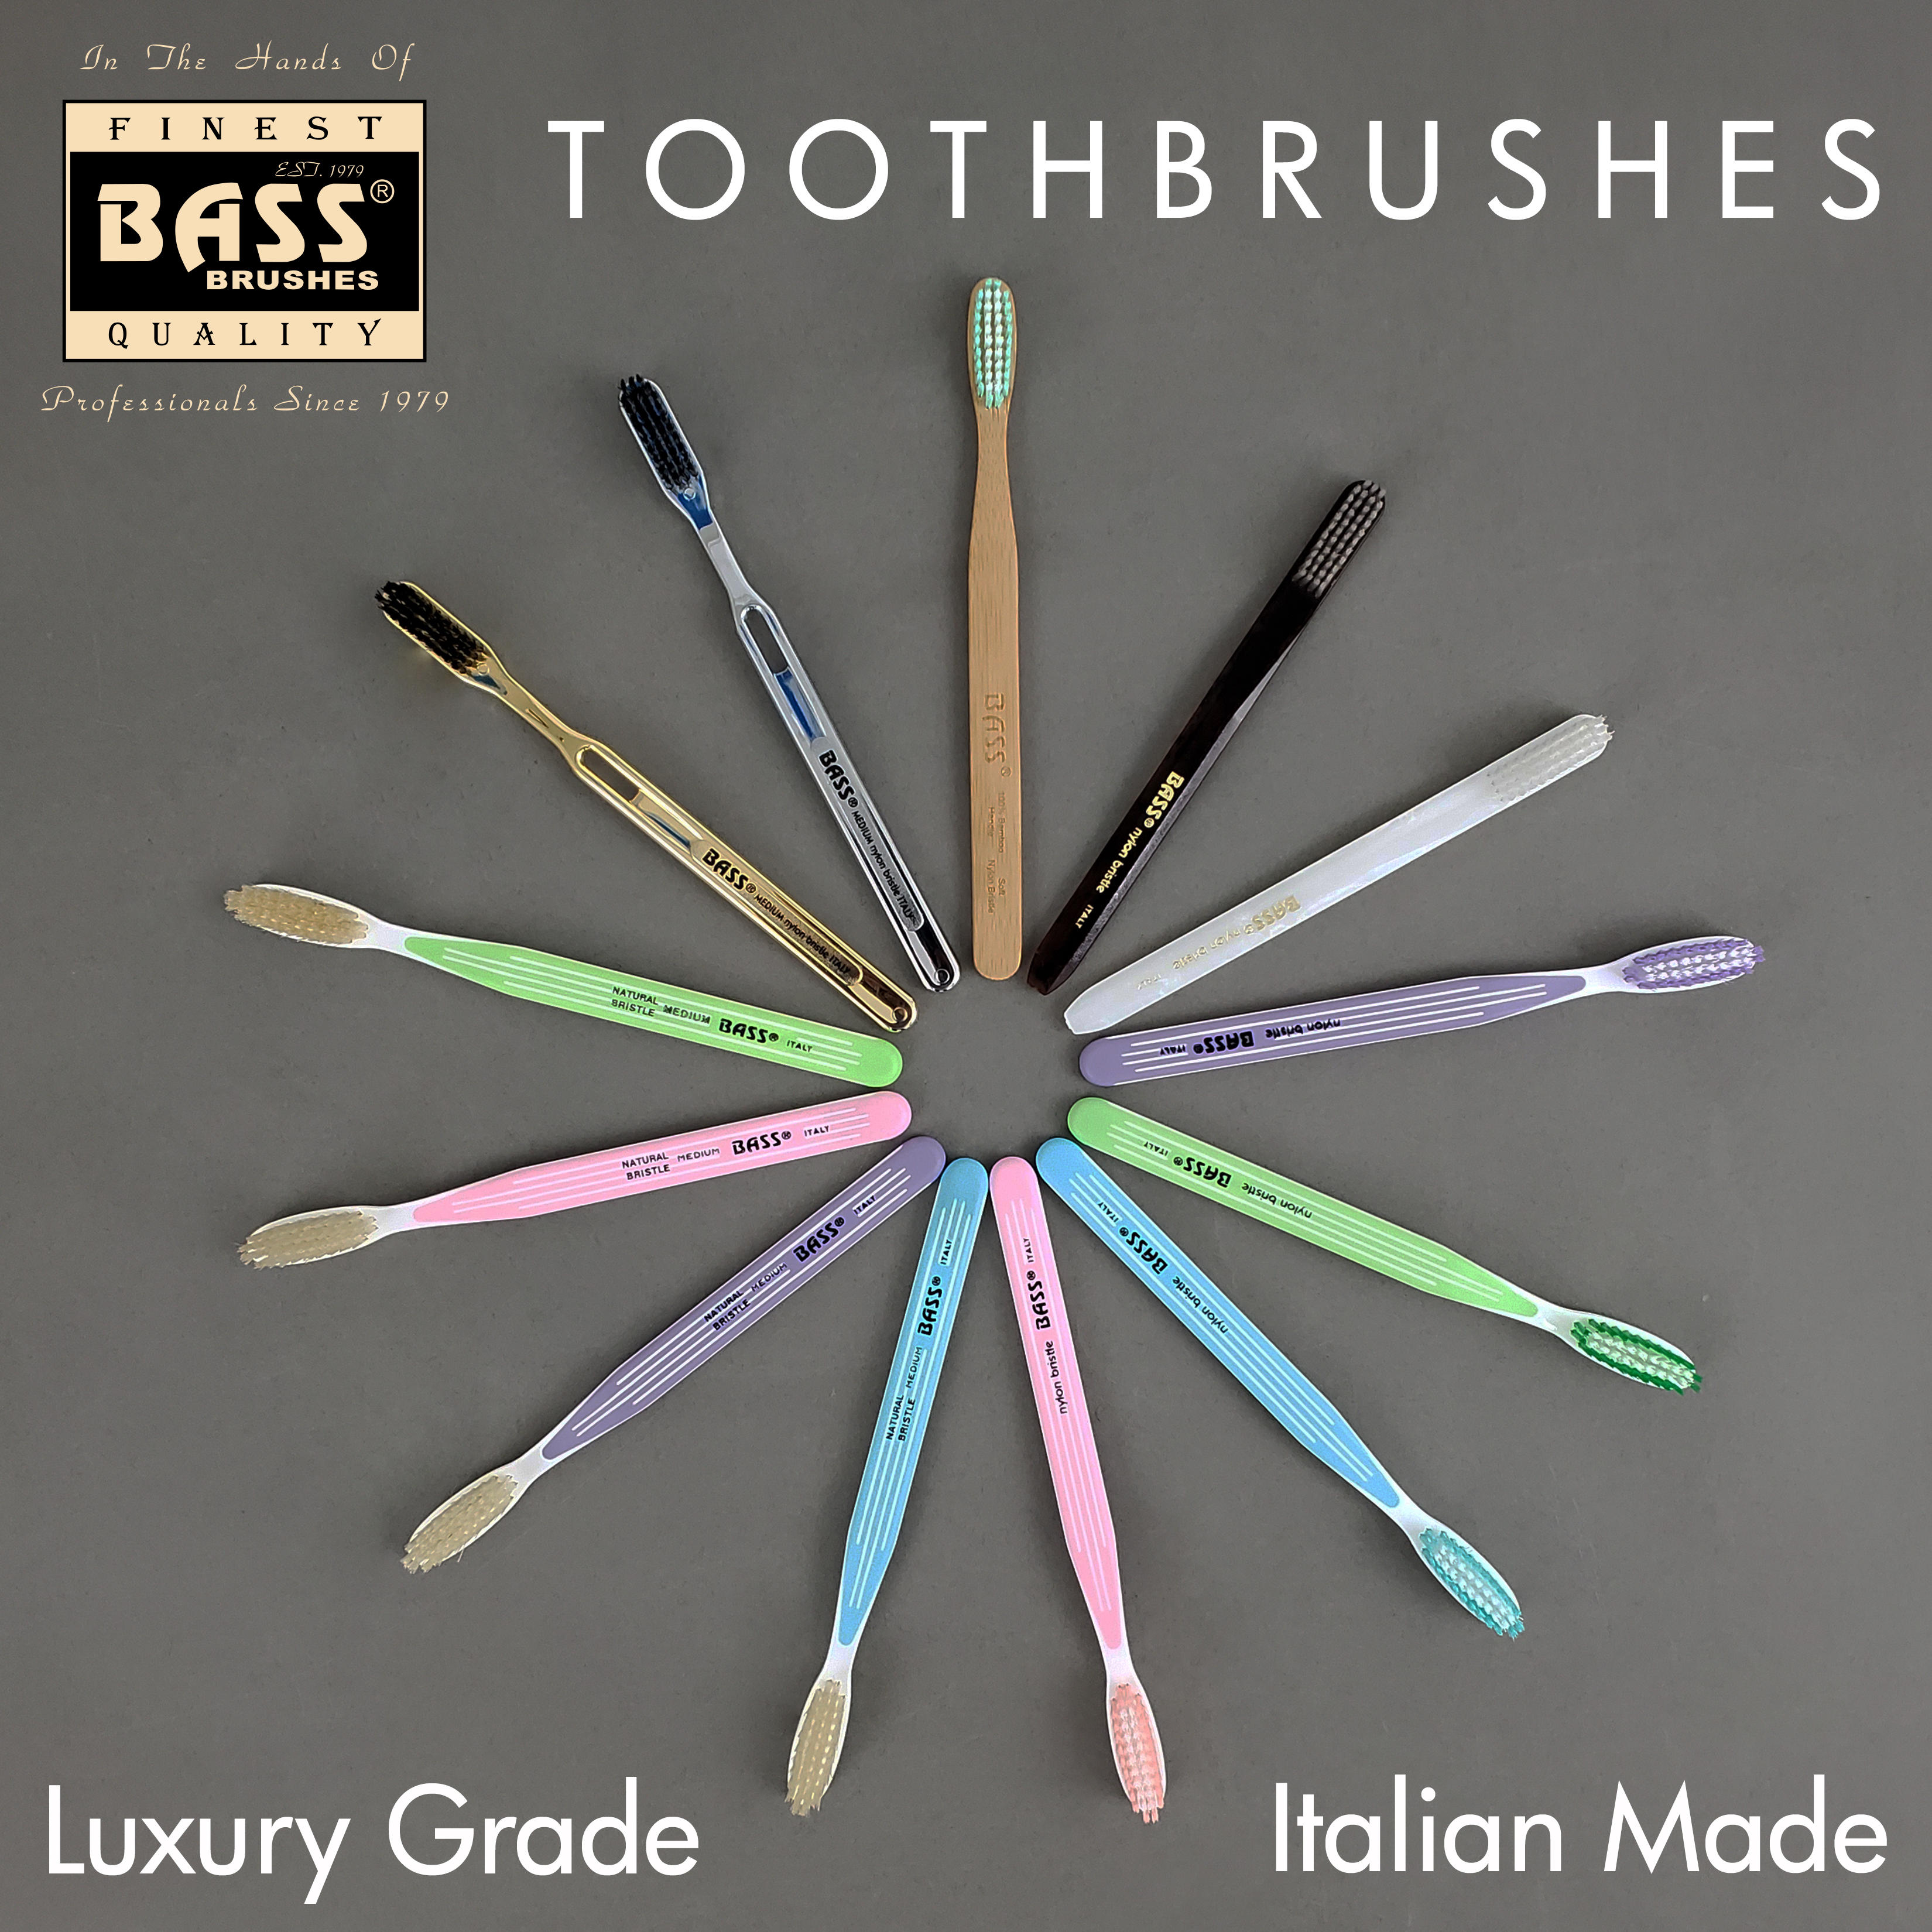 Toothbrushes 1